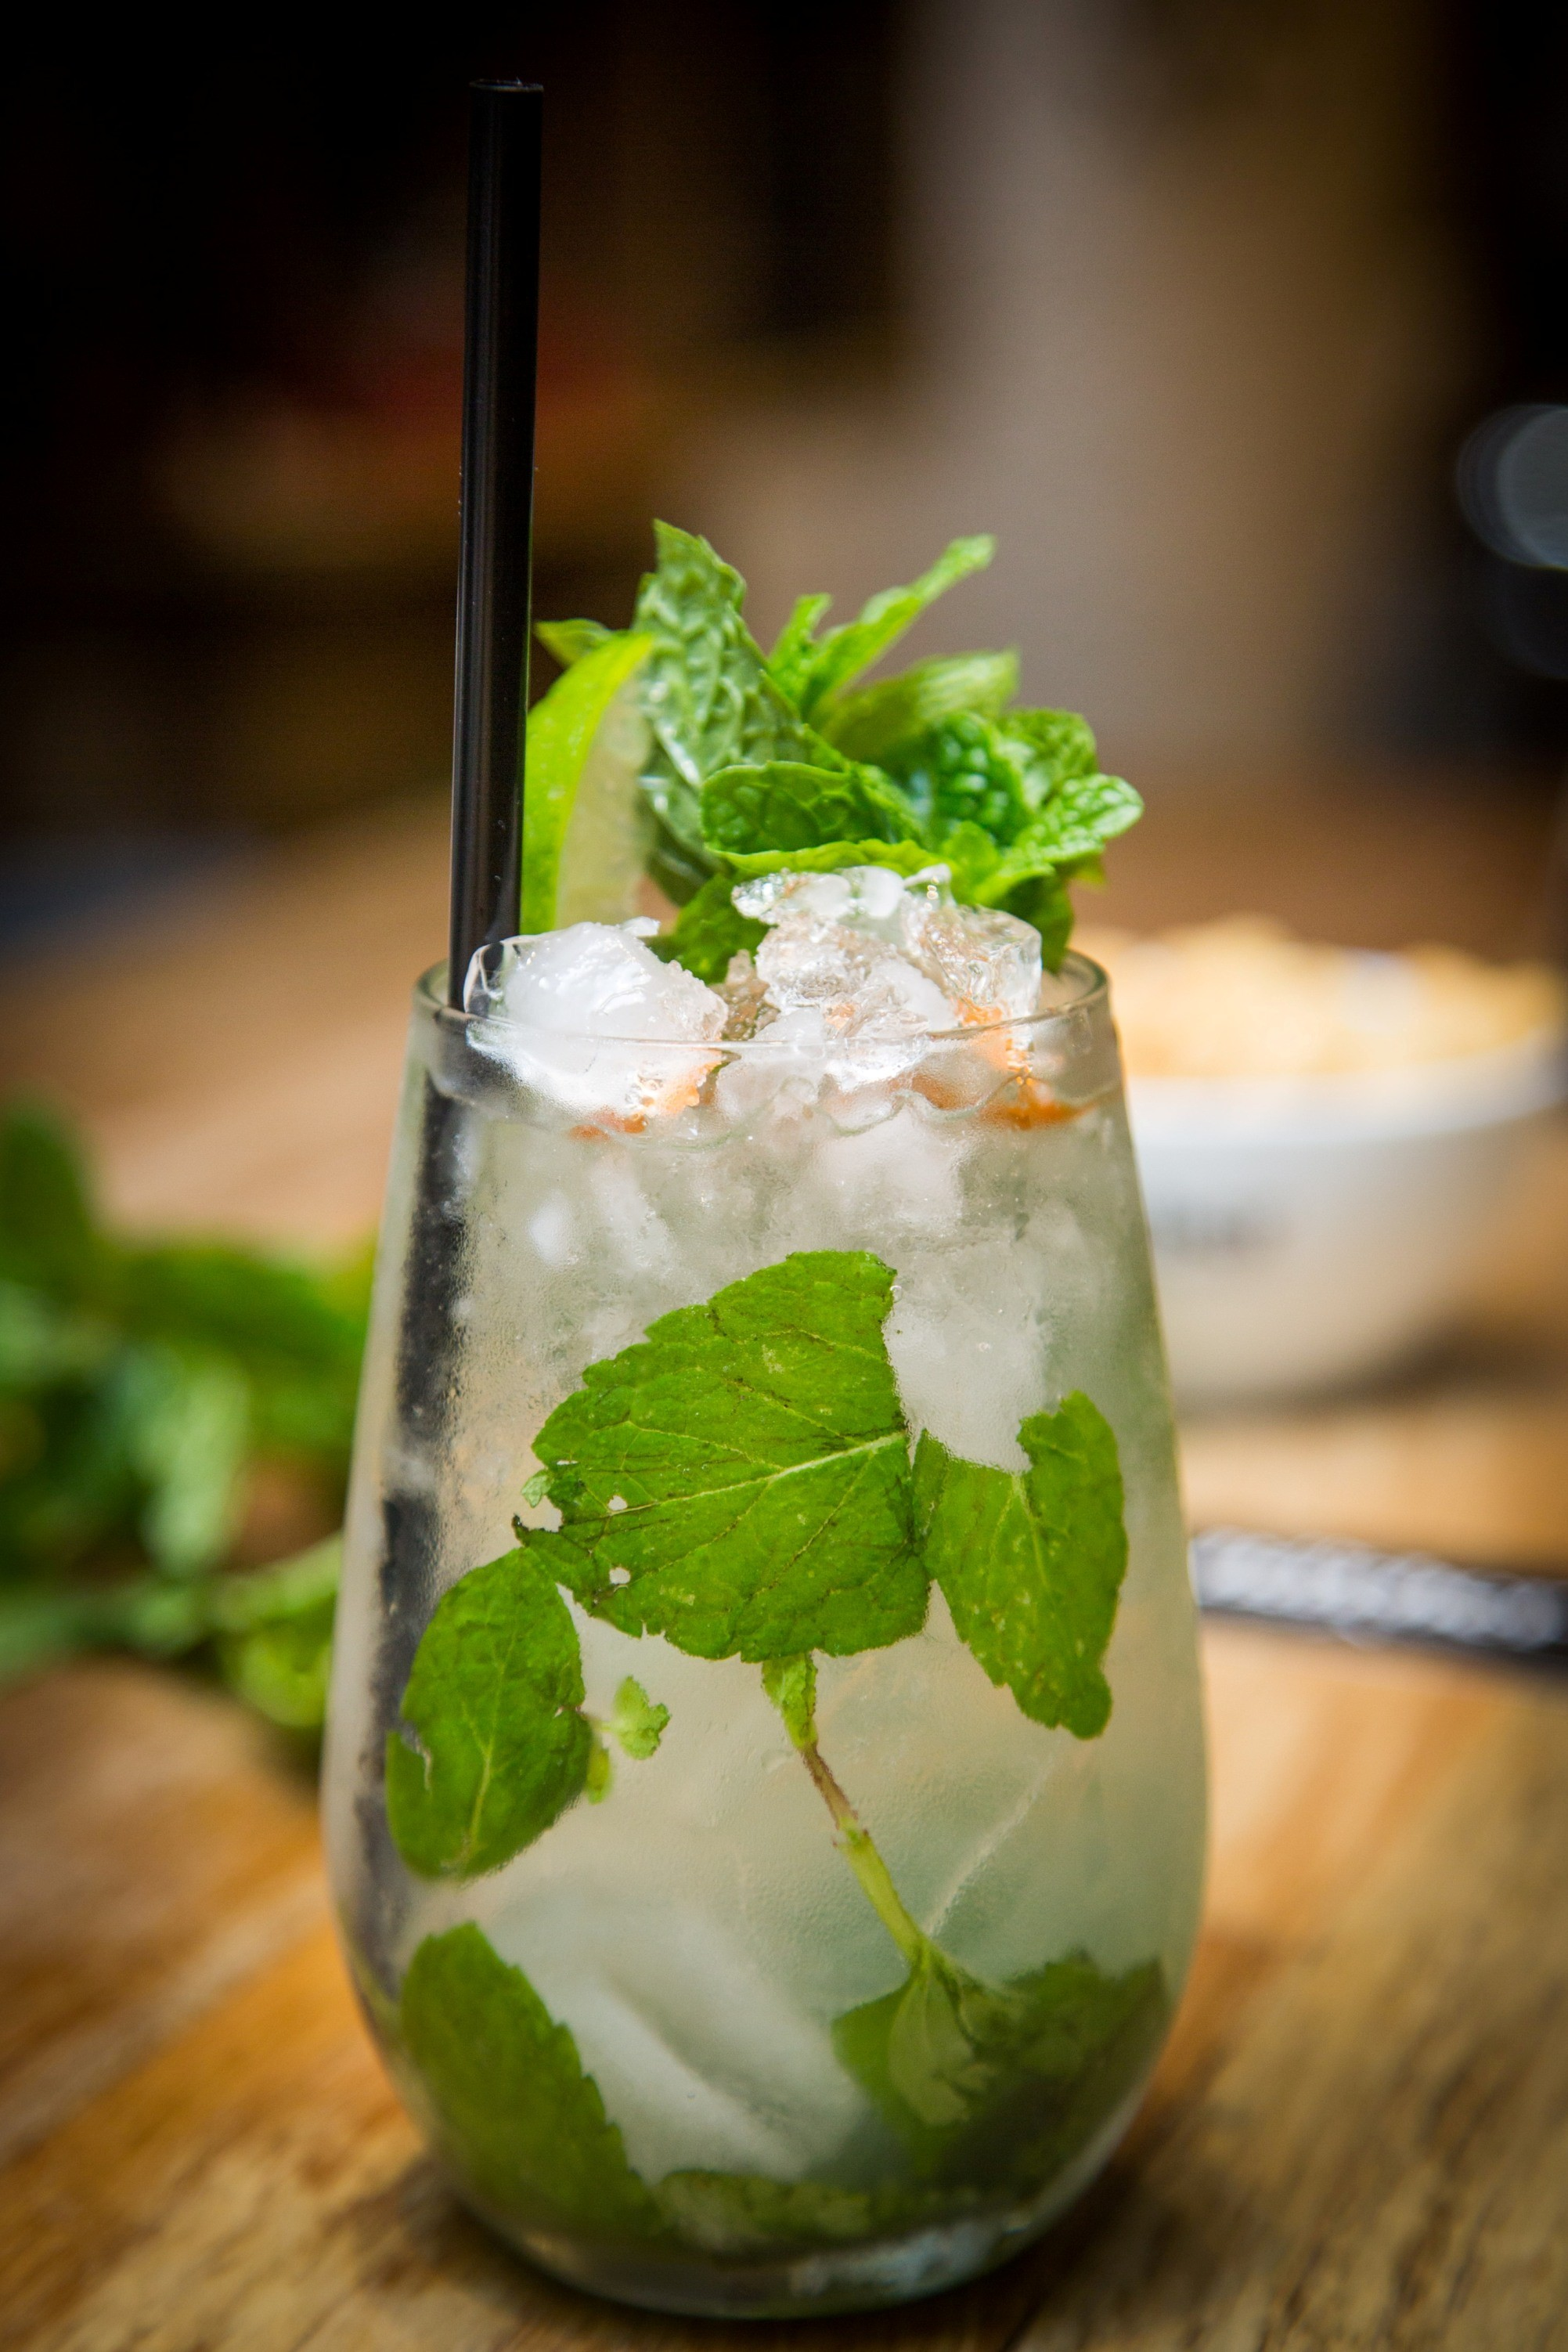 O mojito da The Barber (Foto: Barbara Lopes)